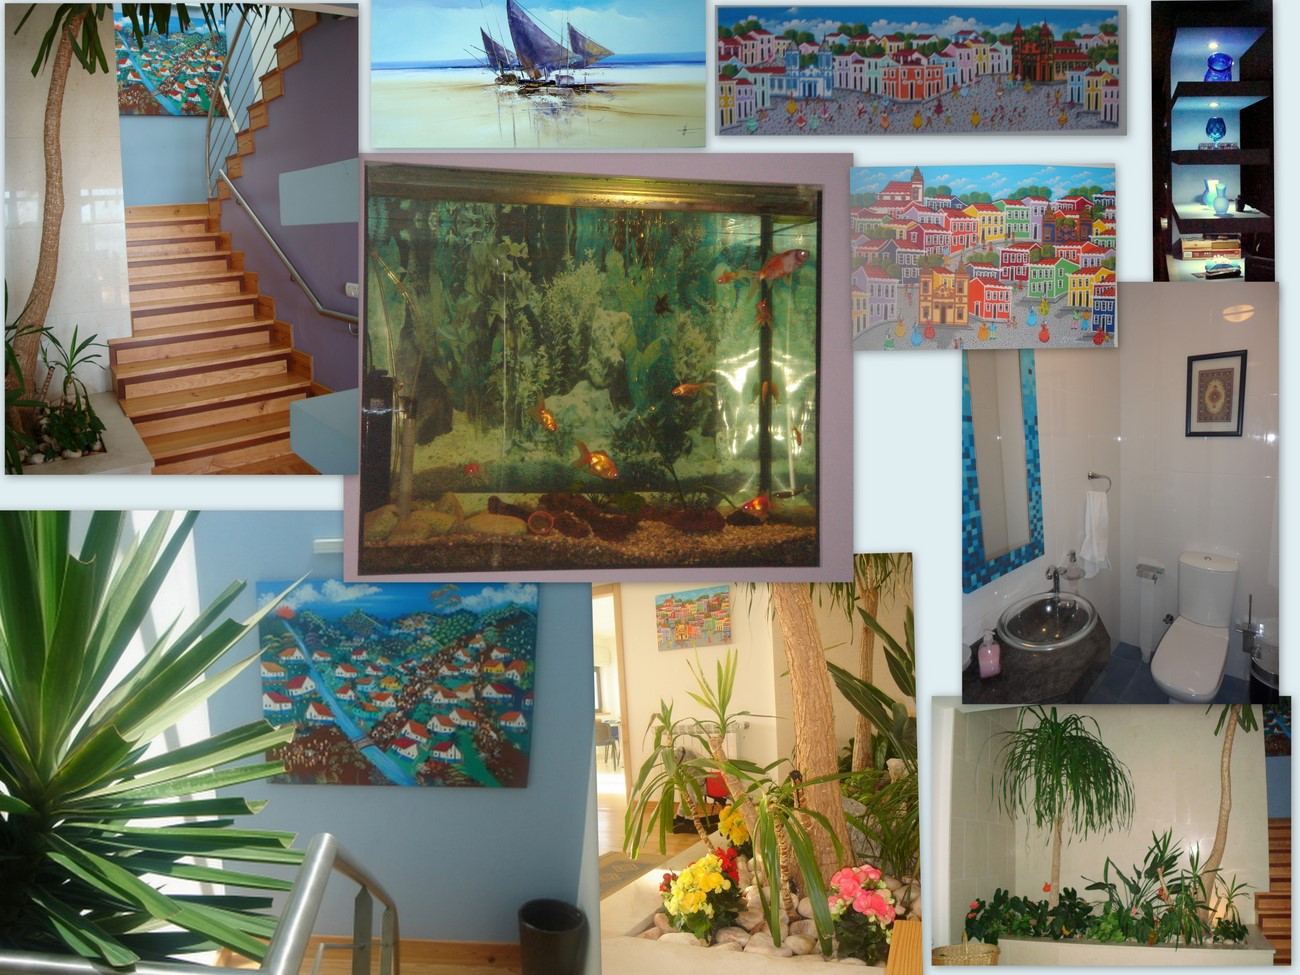 living room&#39;s built-in-fish-tank, WC, interior garden, artwork